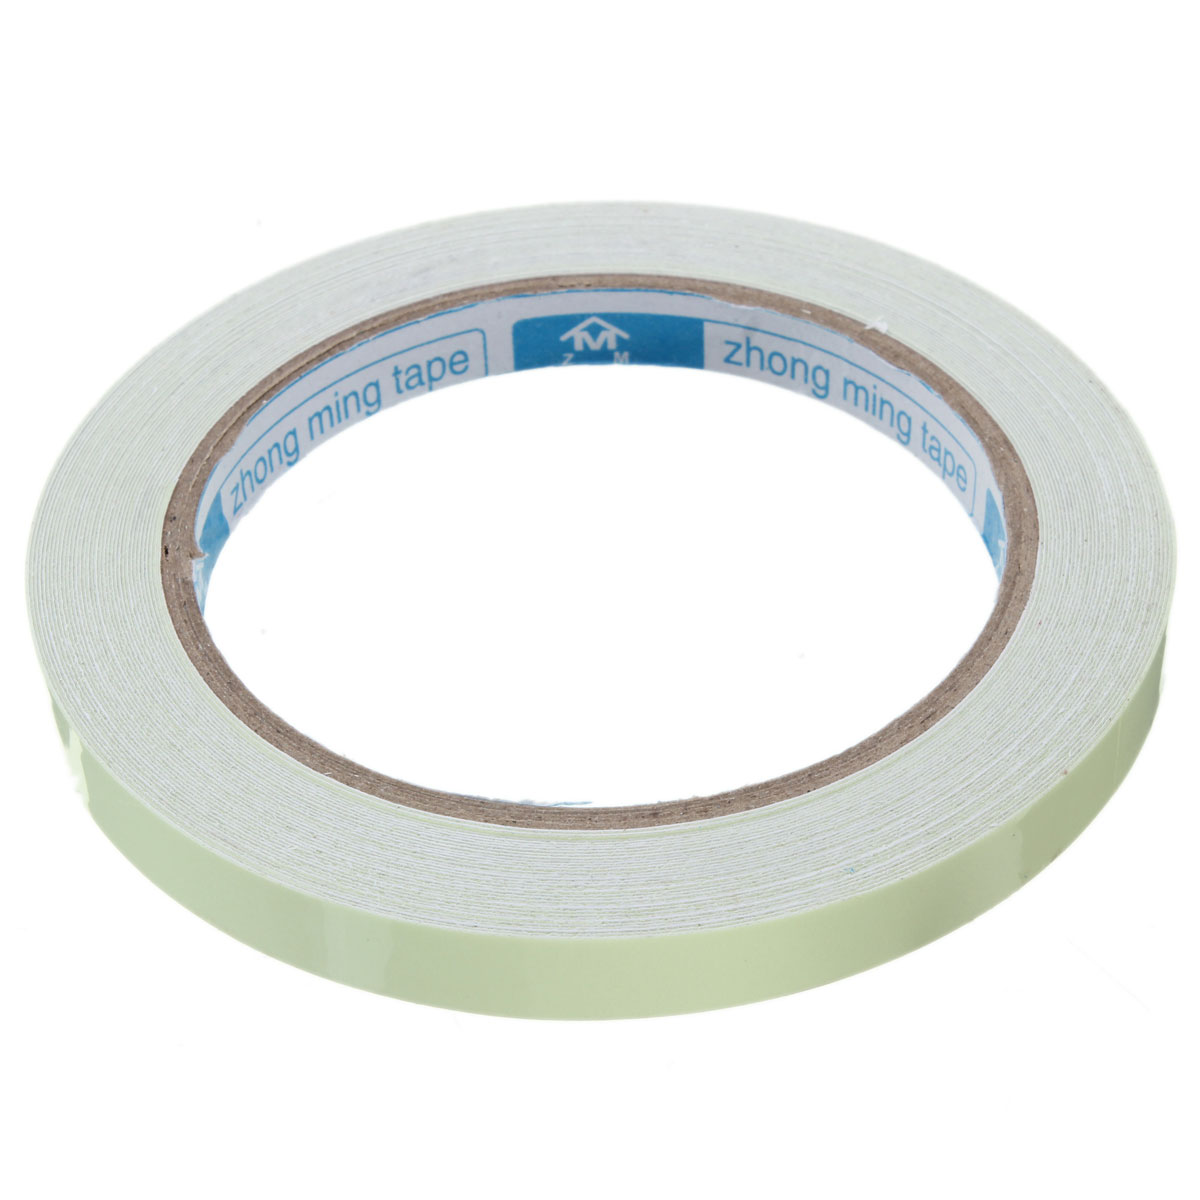 Self adhesive luminous tape strip glow in the dark green for Adhesive decoration